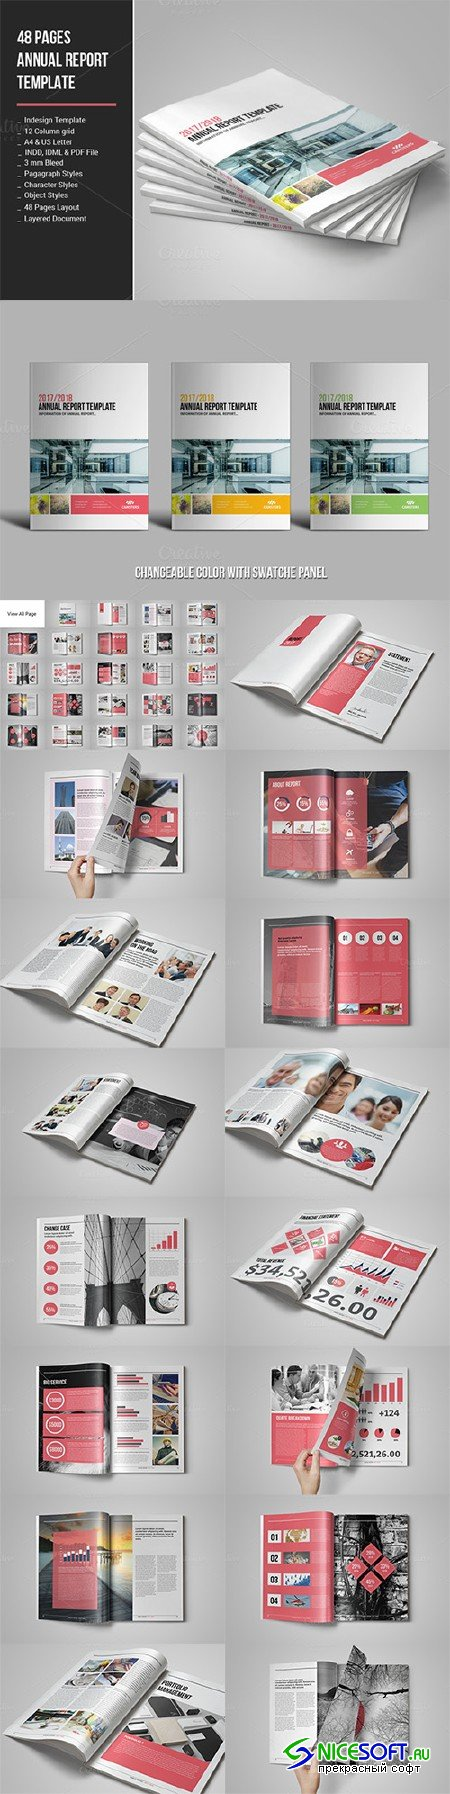 48 Pages Annual Report Template - Creativemarket 682531